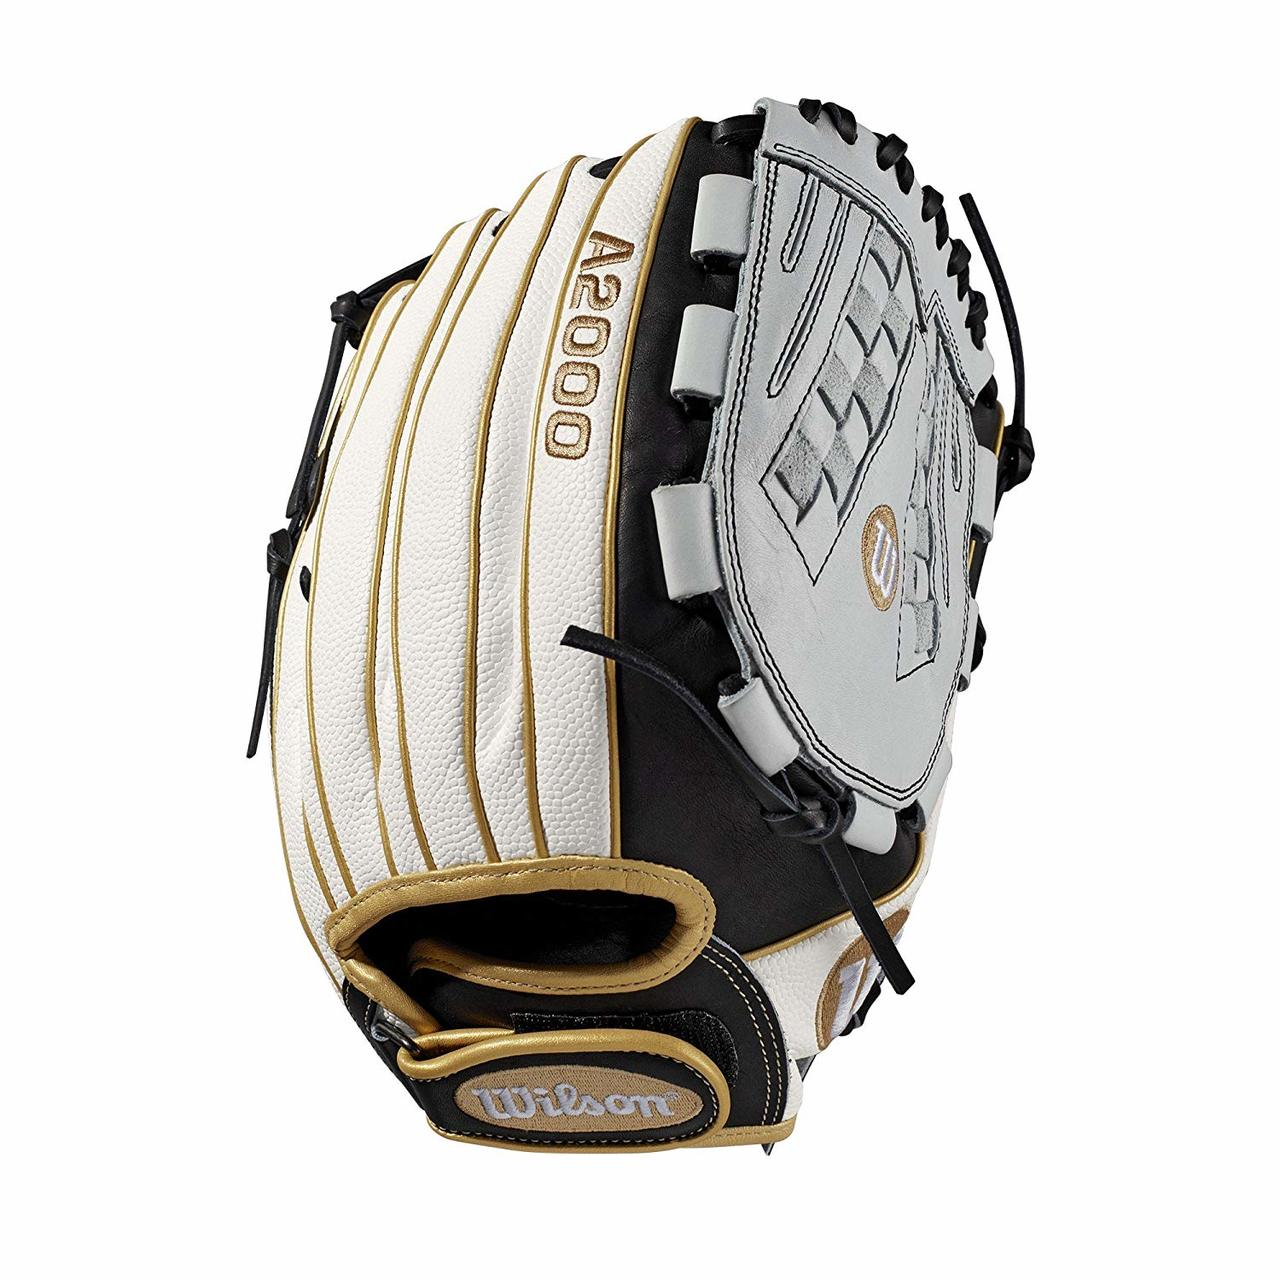 wilson-a2000-fast-pitch-softball-glove-12-5-right-hand-throw-a20rf19v125ss WTA20RF19V125SS-RightHandThrow Wilson 887768702151 Outfield model; fast pitch-specific model; Victory web Comfort Velcro wrist closure